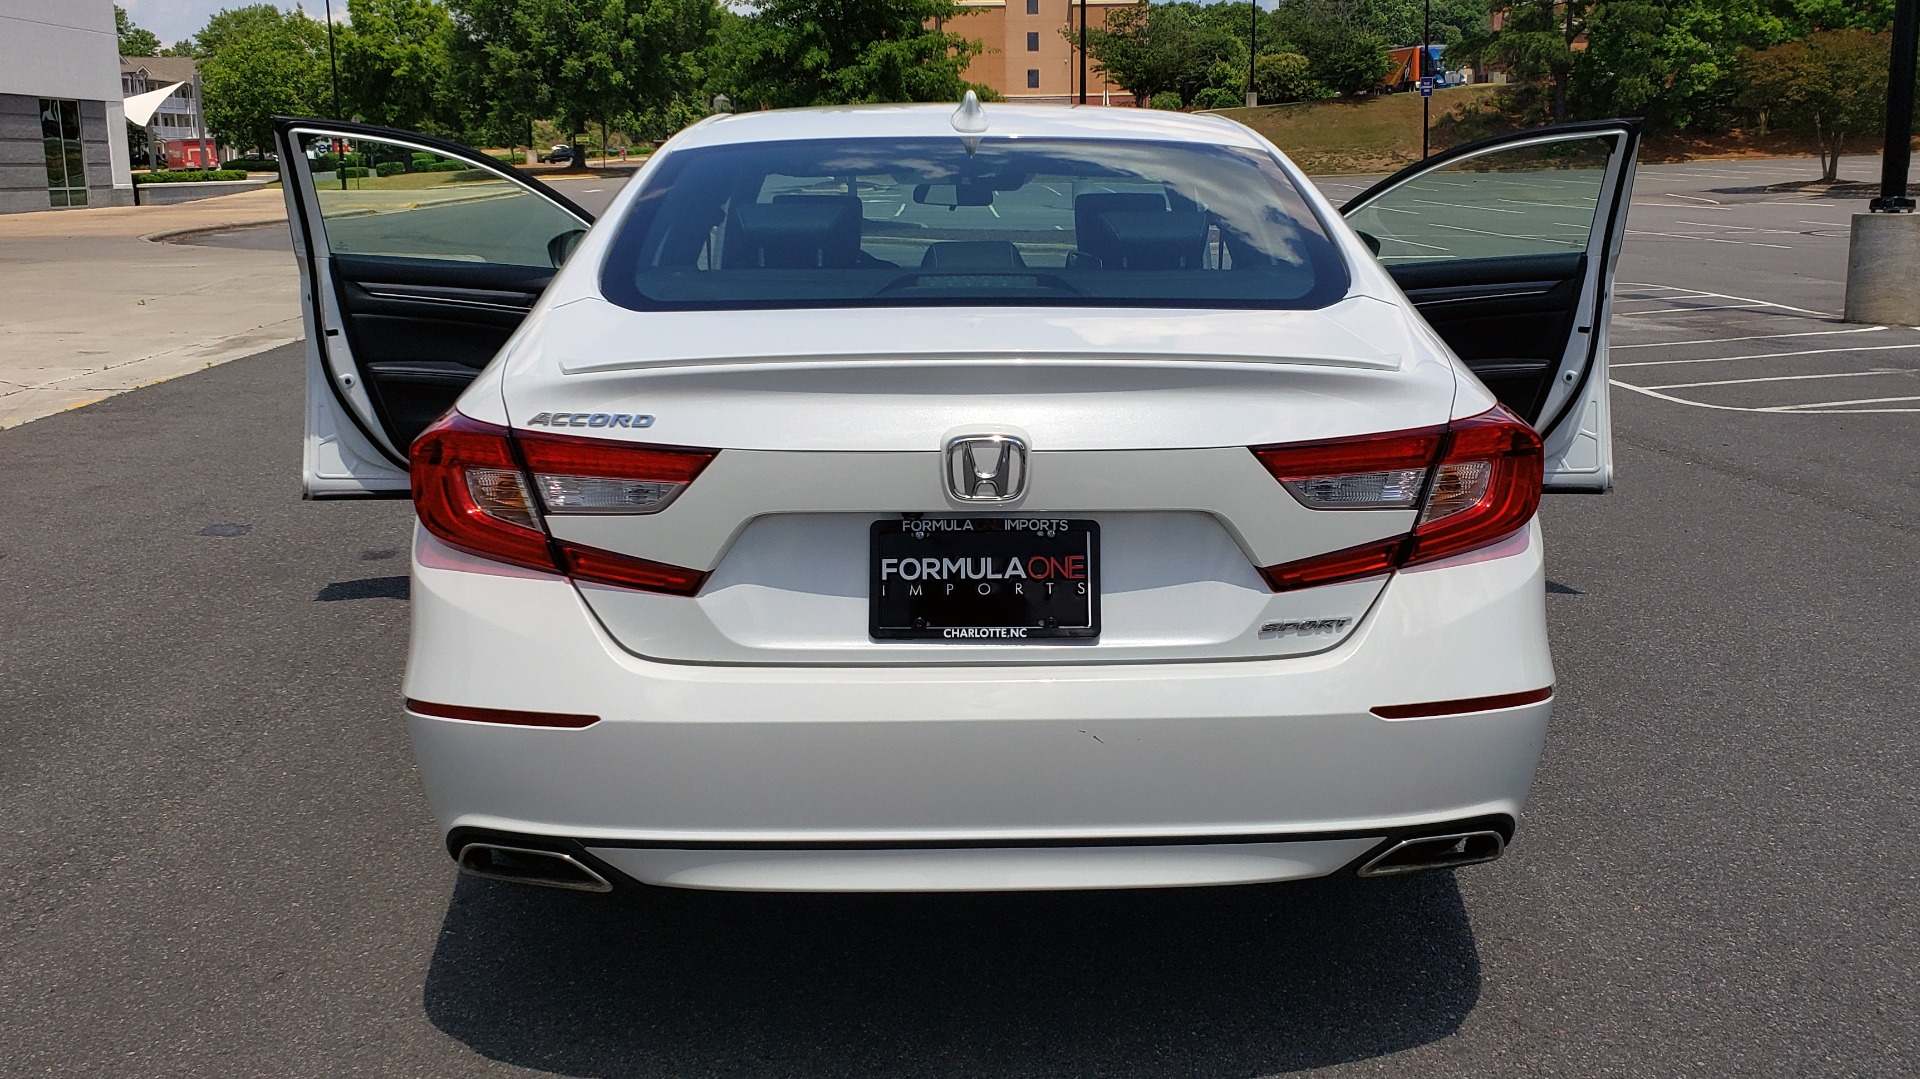 Used 2018 Honda ACCORD SEDAN SPORT 1.5T / CVT TRANS / FWD / 19IN WHEELS for sale $20,995 at Formula Imports in Charlotte NC 28227 22